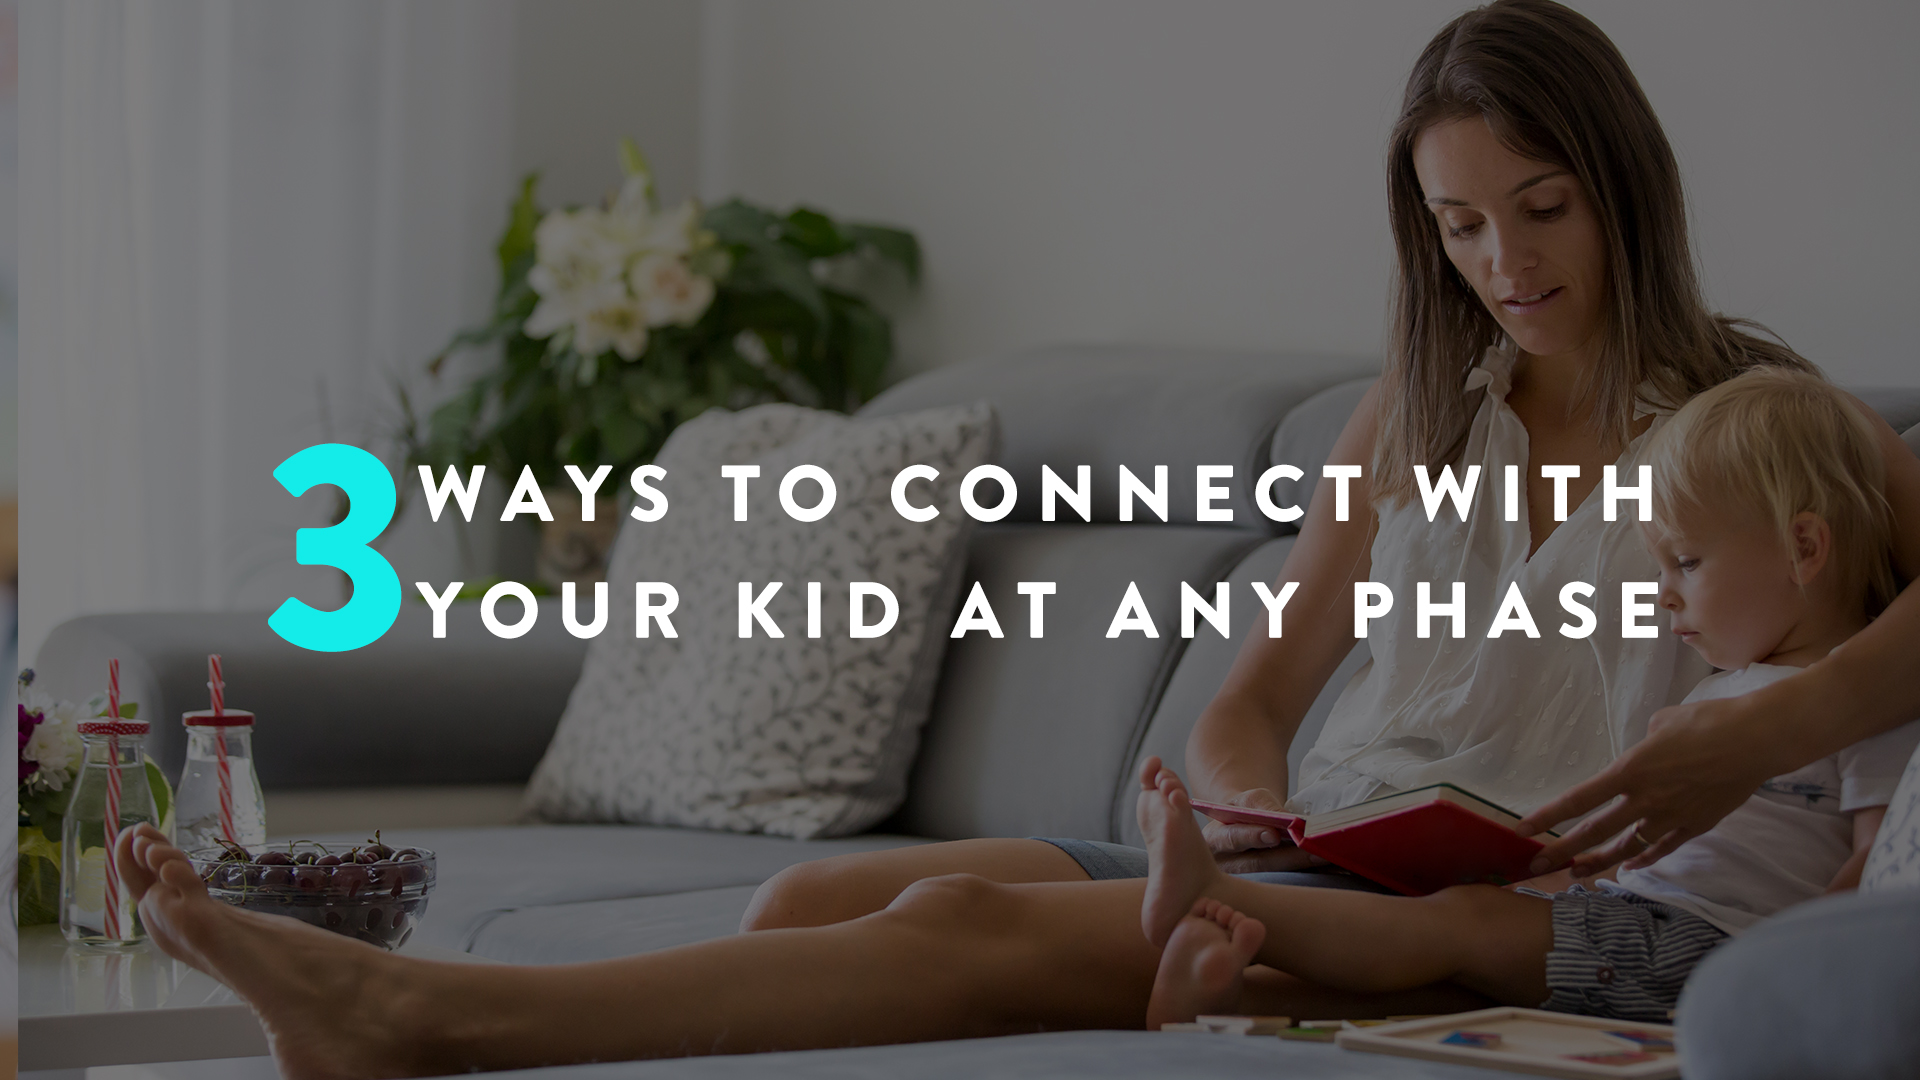 Three Ways to Connect with Your Kid at Any Phase | Parent Cue Blog